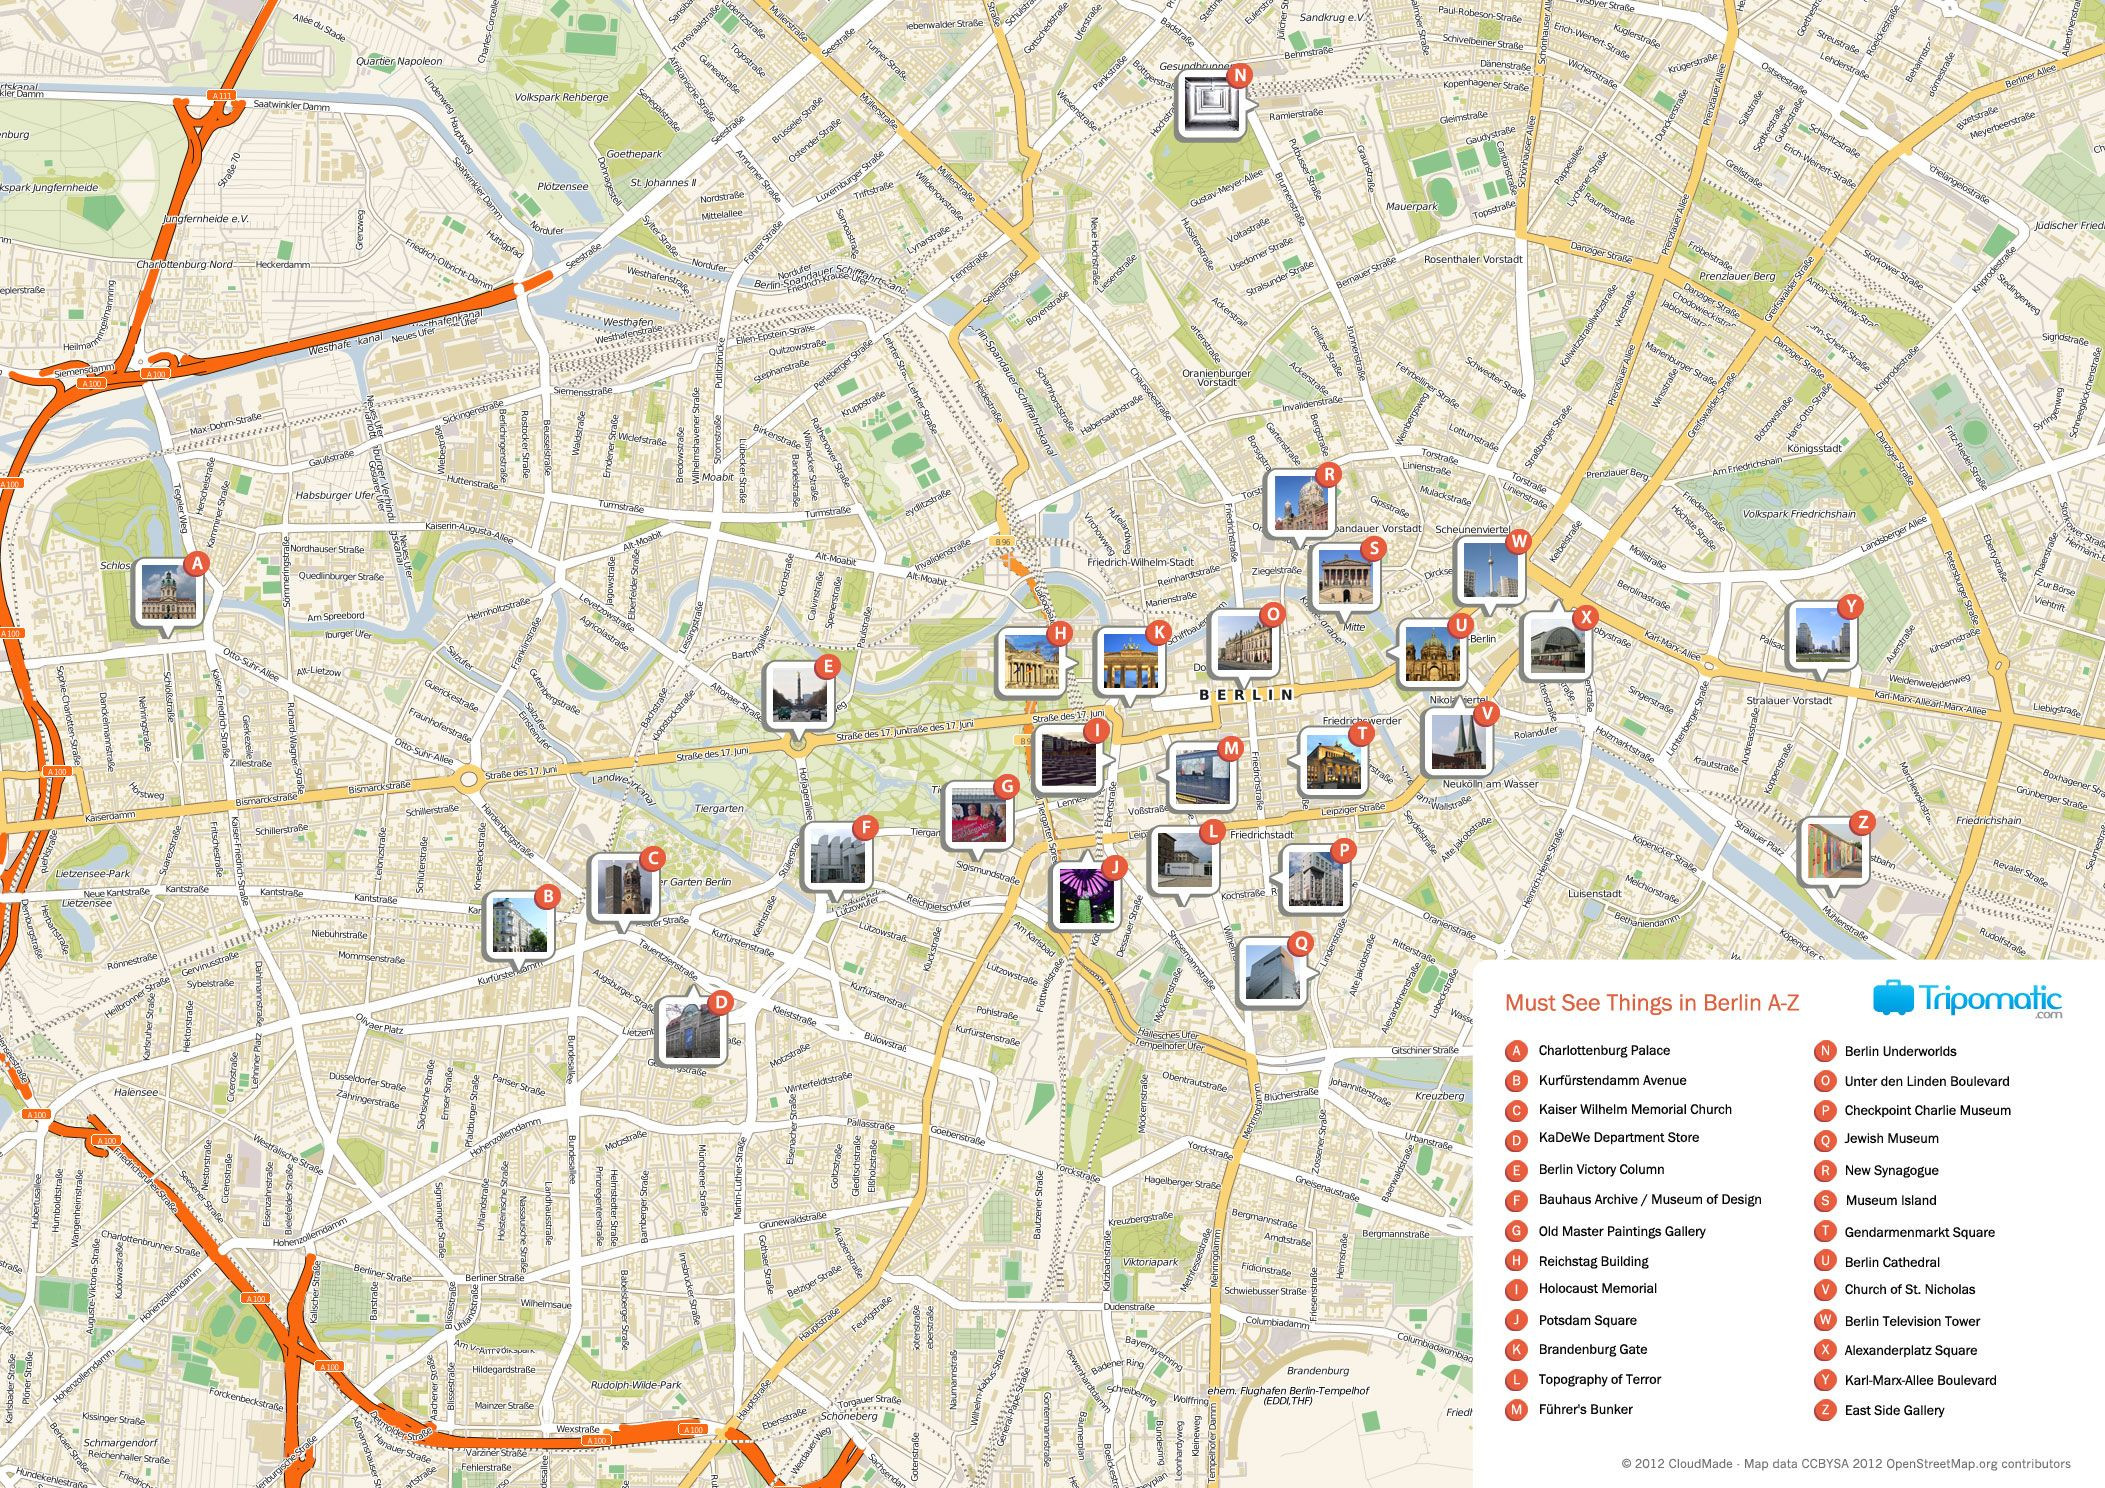 Map of Berlin tourist sights and attractions from Tripomatic